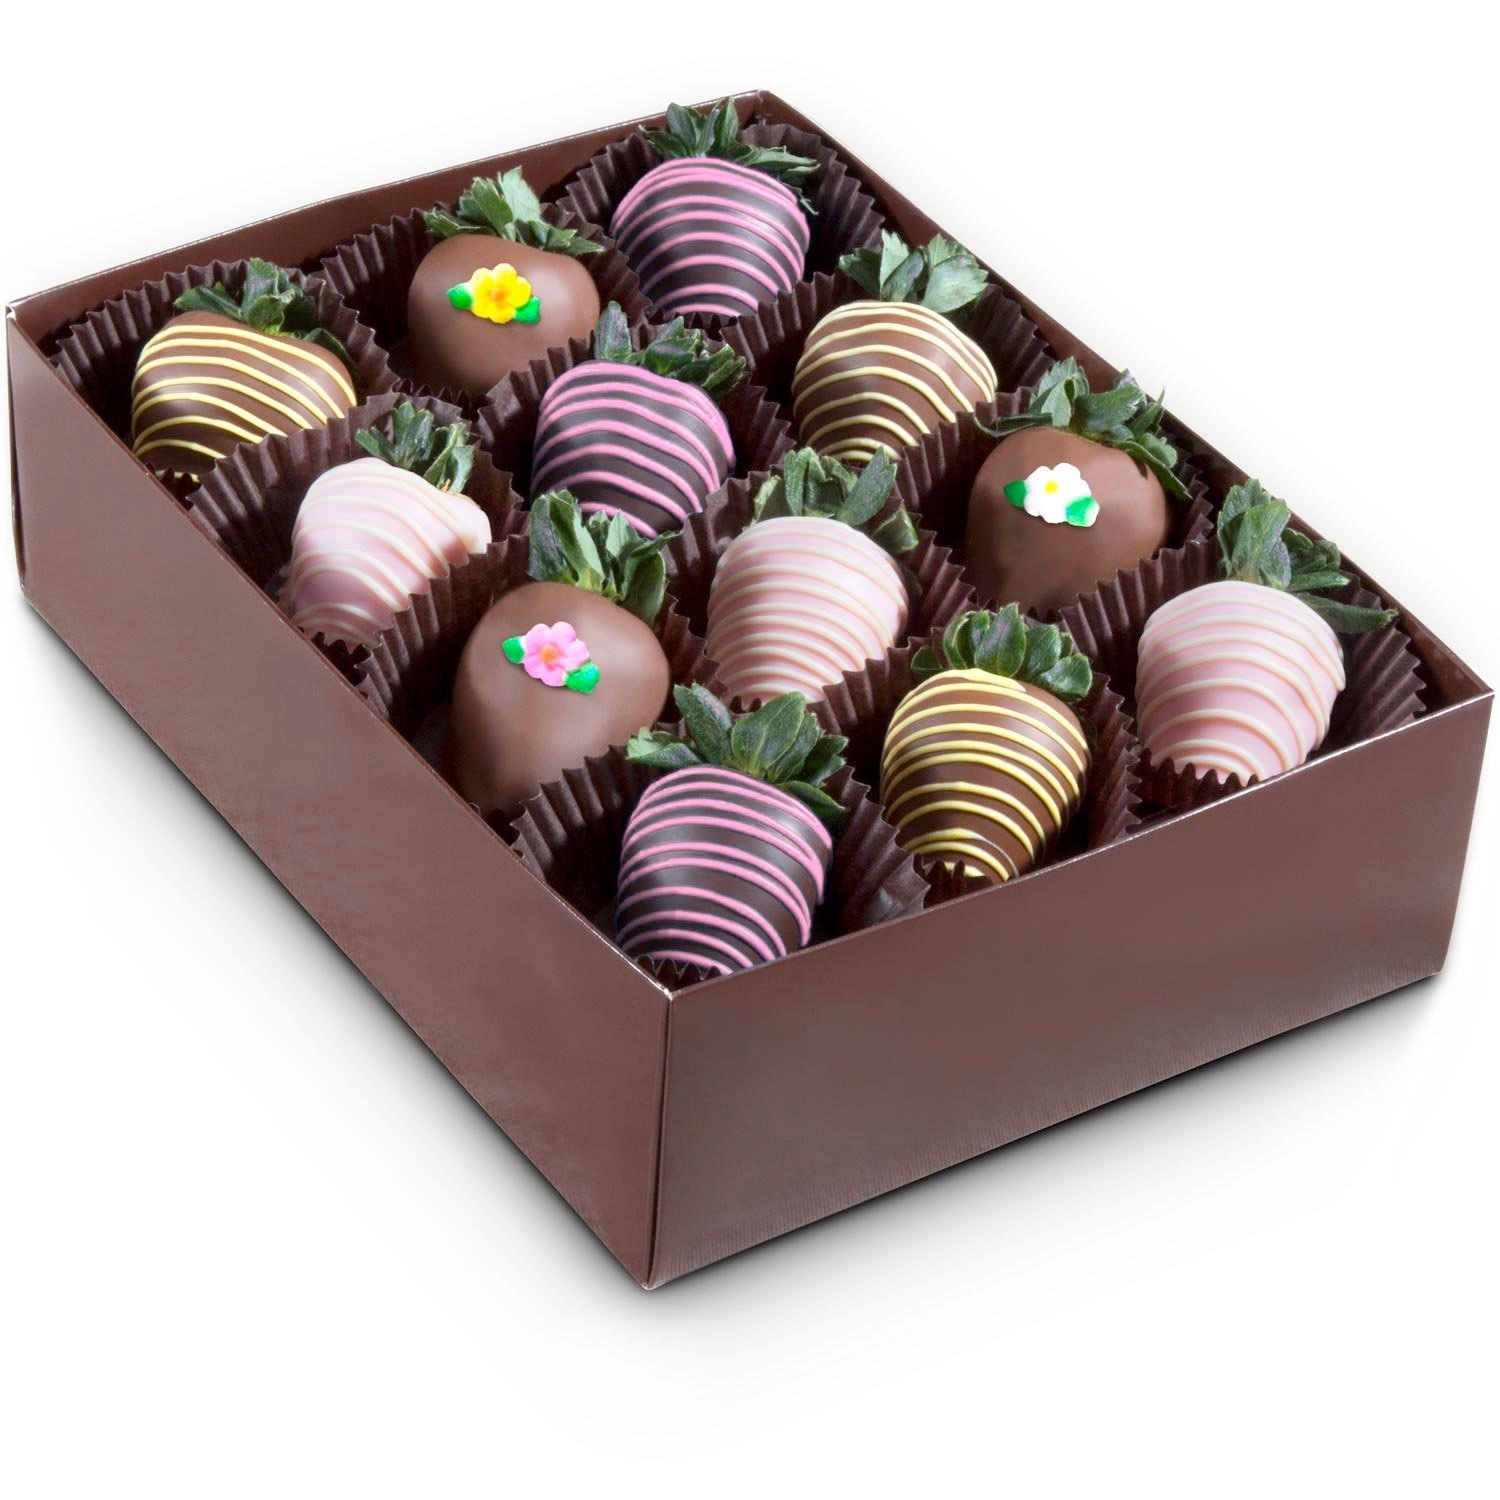 Golden State Fruit 12 Piece Sweet Summer Chocolate Covered Strawberries by Golden State Fruit (Image #2)